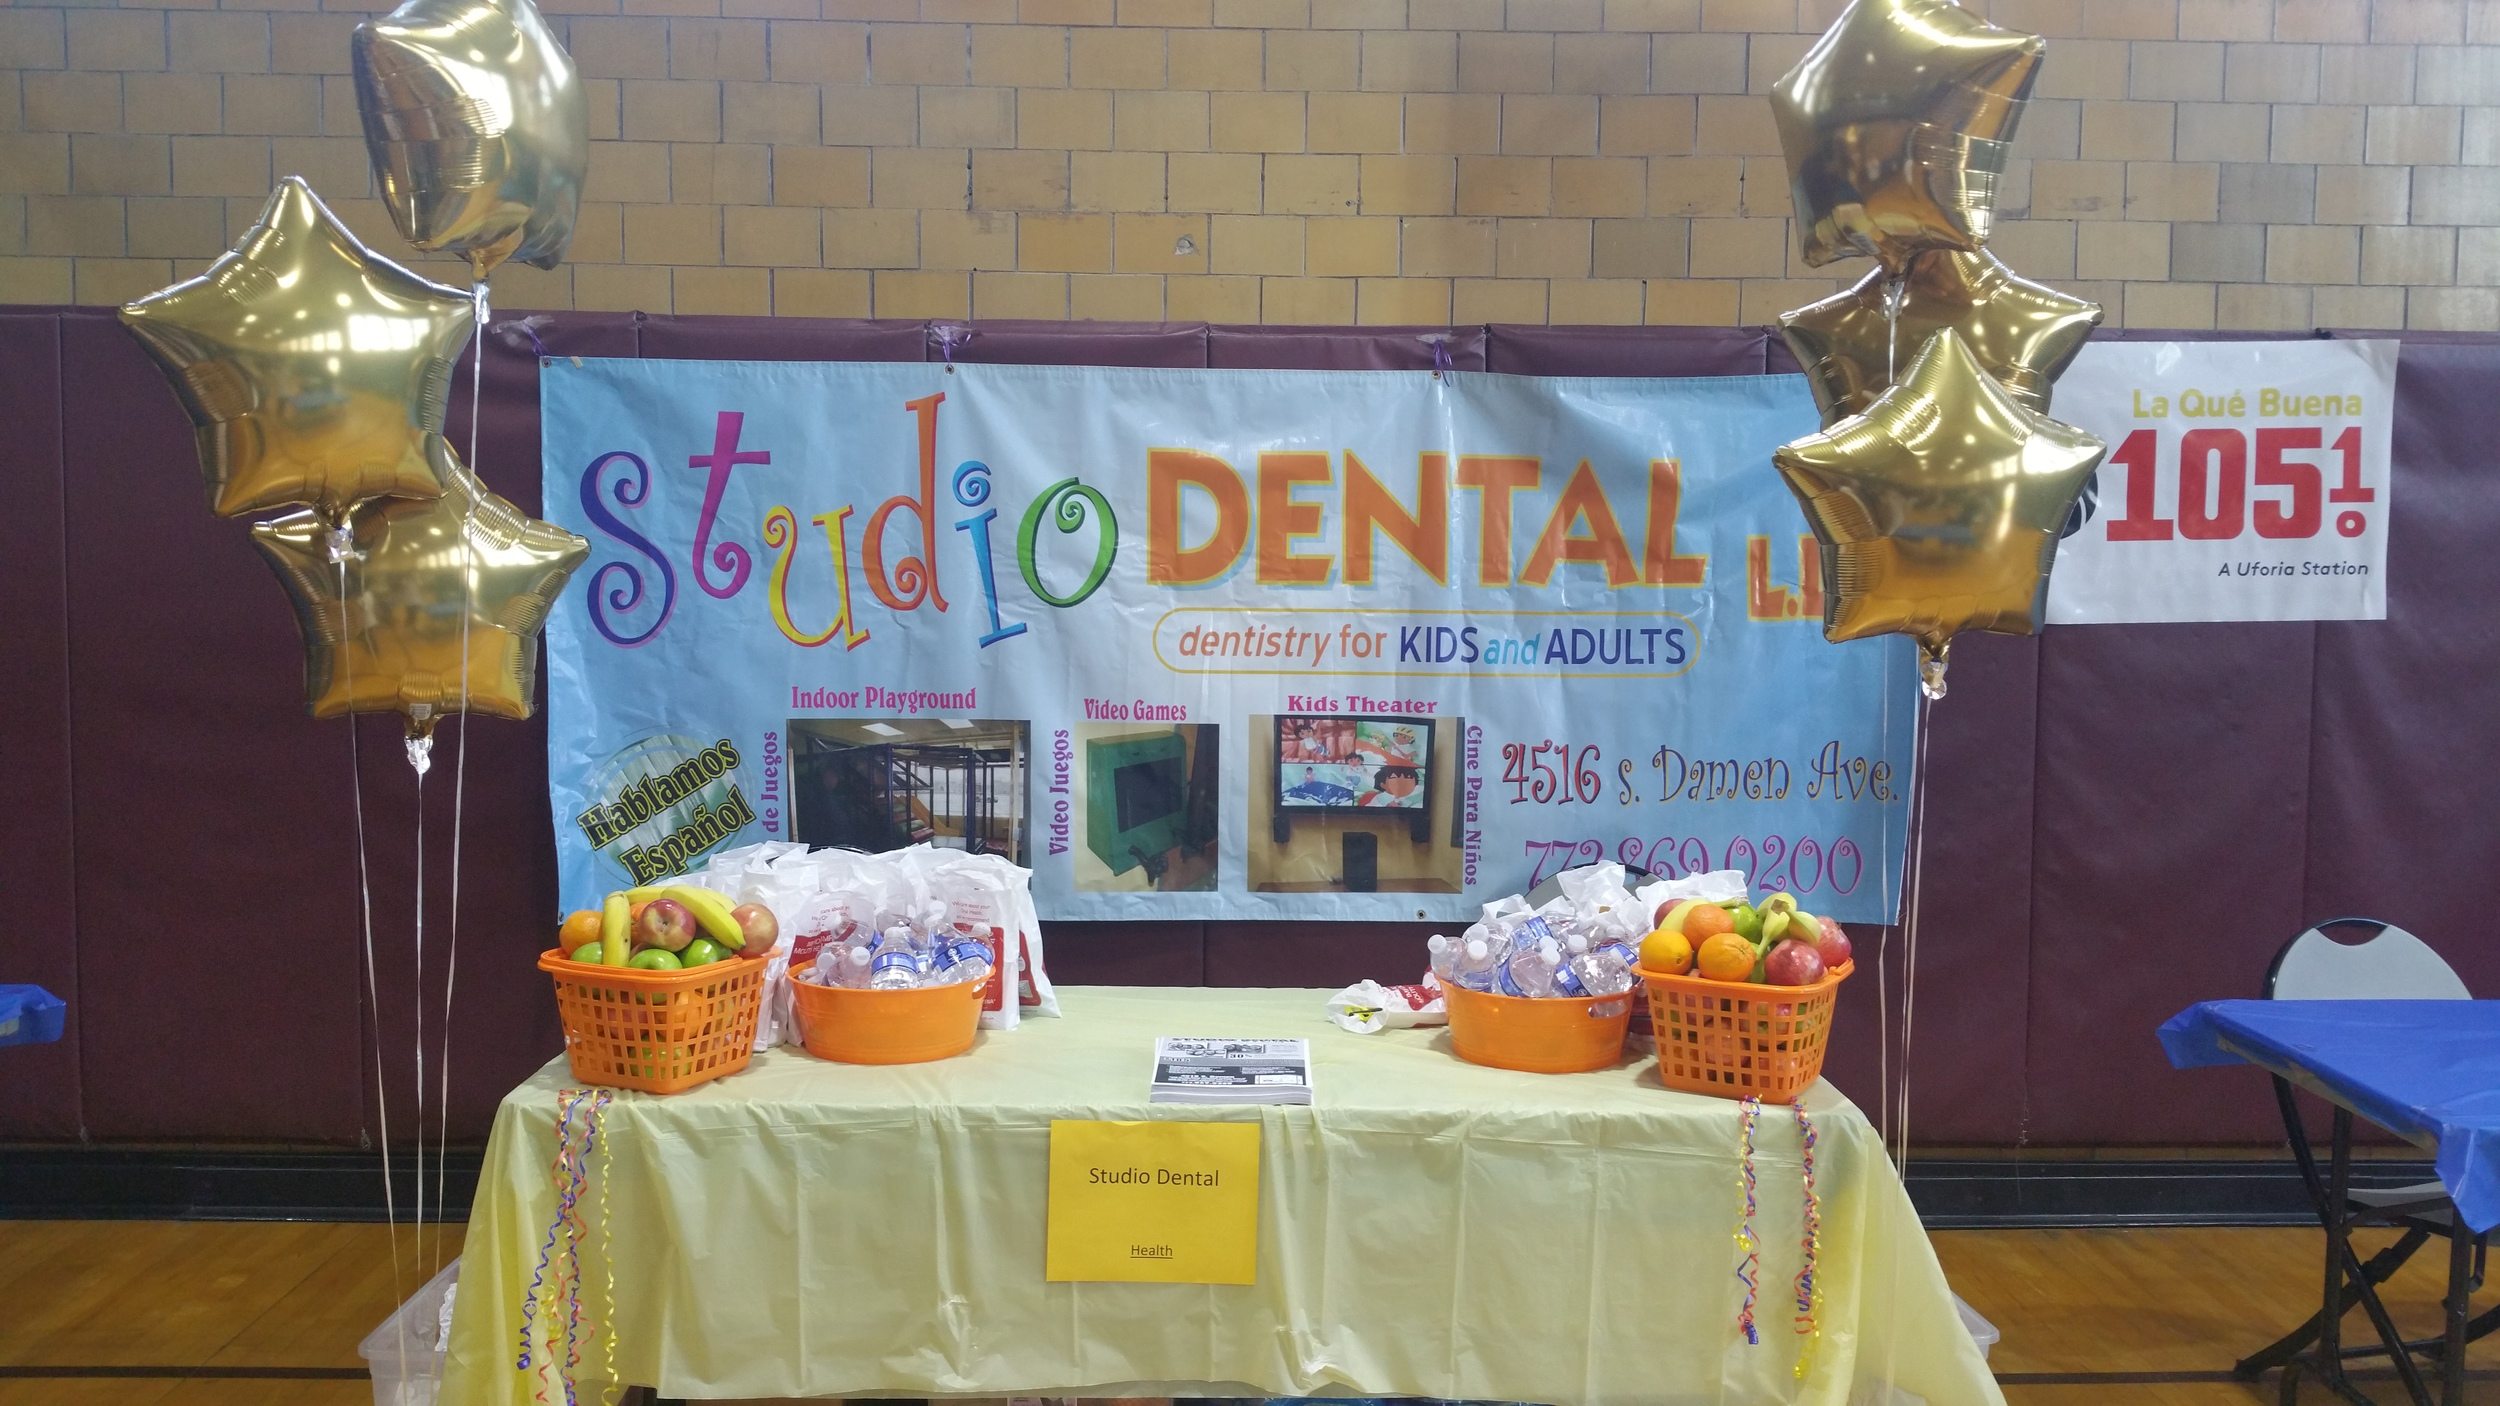 Studio Dental table at the Back to School Health and Fun Fair at Davis Square Park